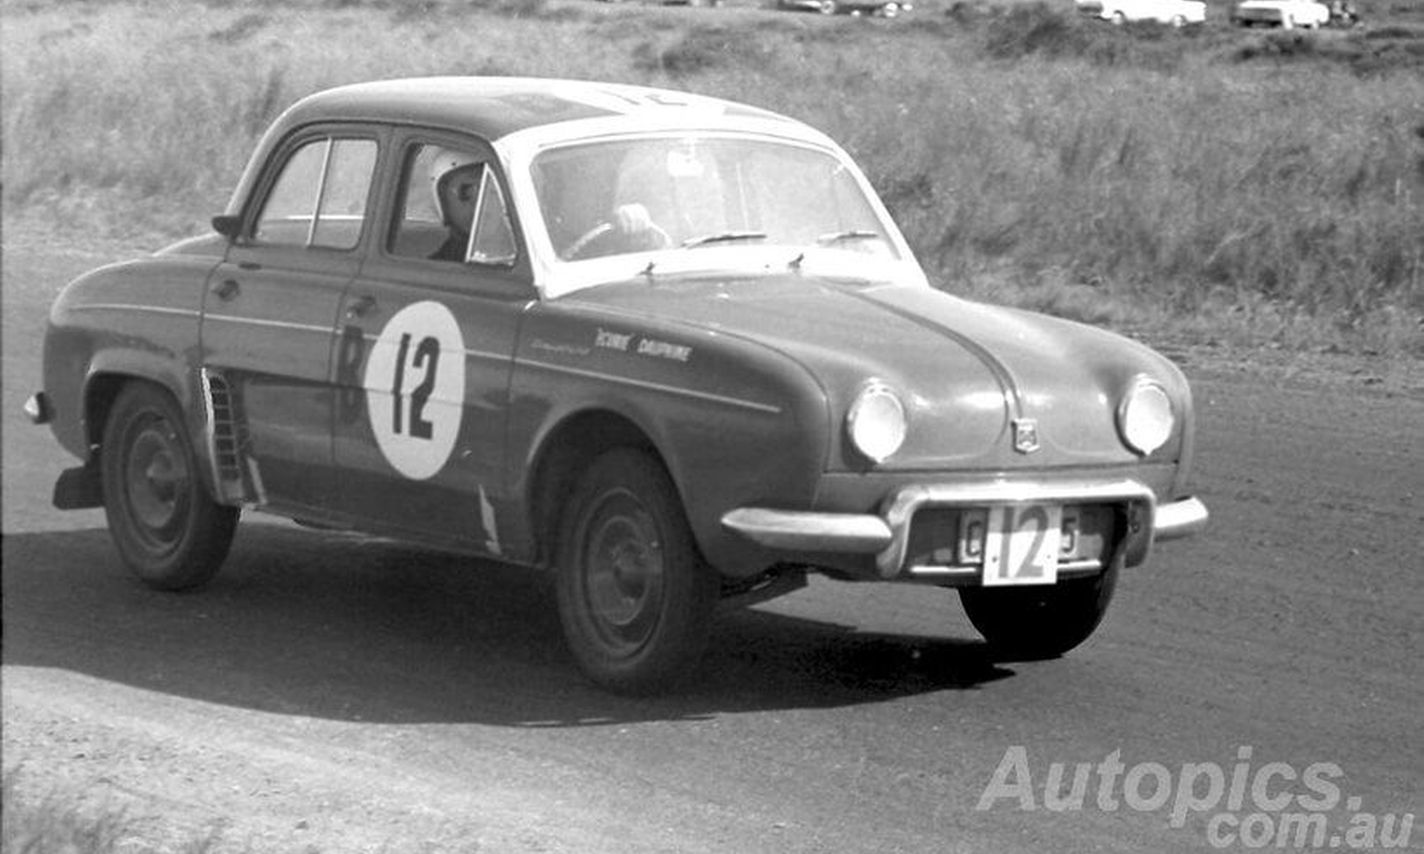 Renault Dauphine Gordini European Rally Star Armstrong 500 Champion Shannons Club